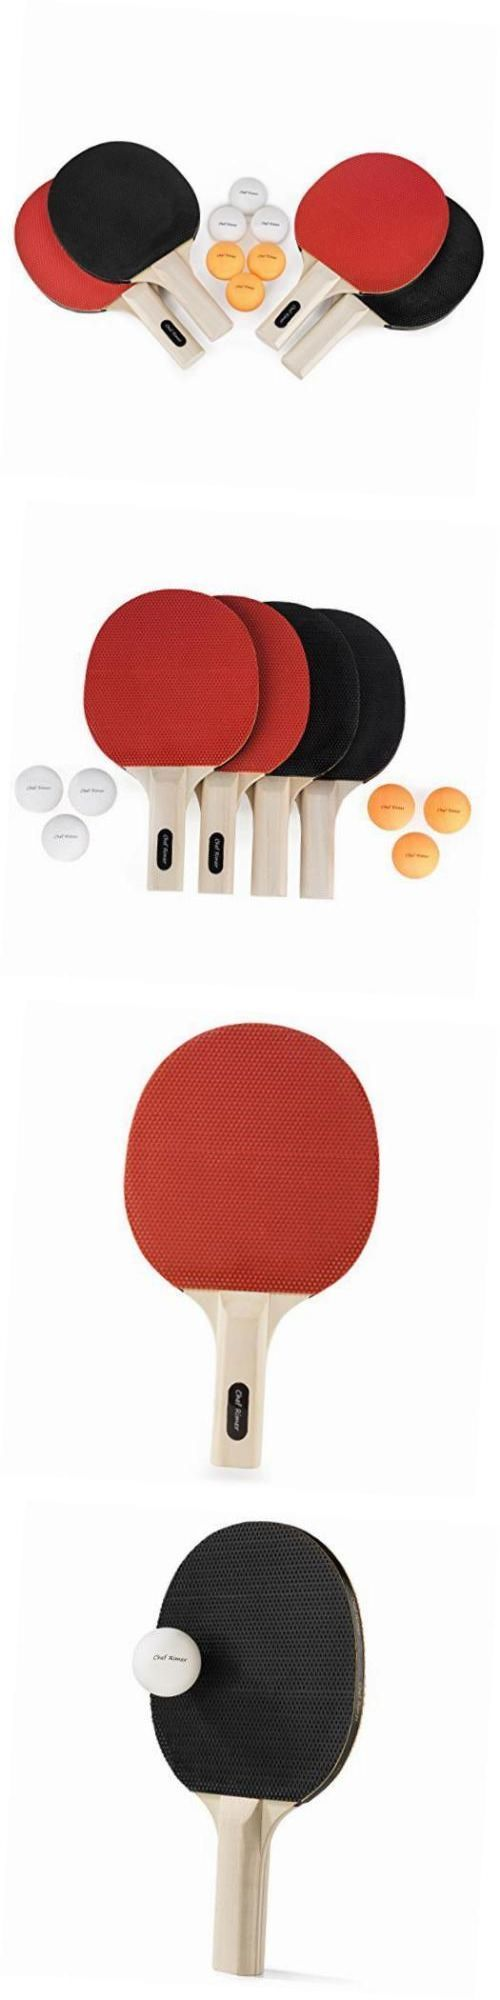 Sets 158955: Table Tennis Set 4 Player Lightweight Ping Pong Paddles Premium Rubber Rackets -> BUY IT NOW ONLY: $41.69 on eBay!